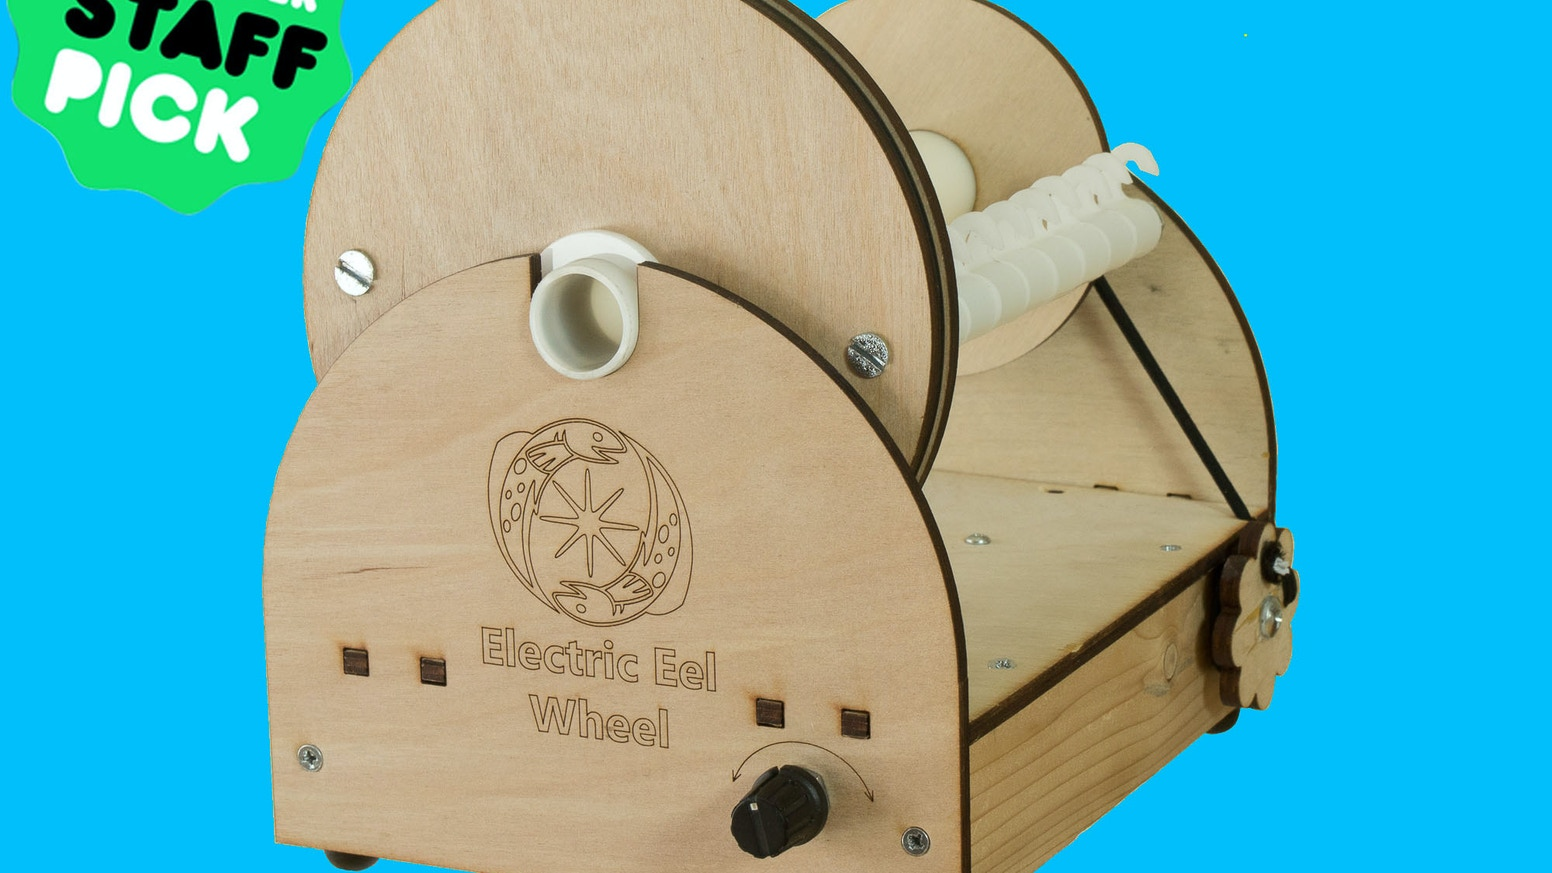 An electric spinning wheel for knitters, crochets, and anyone wanting to make their own yarn.